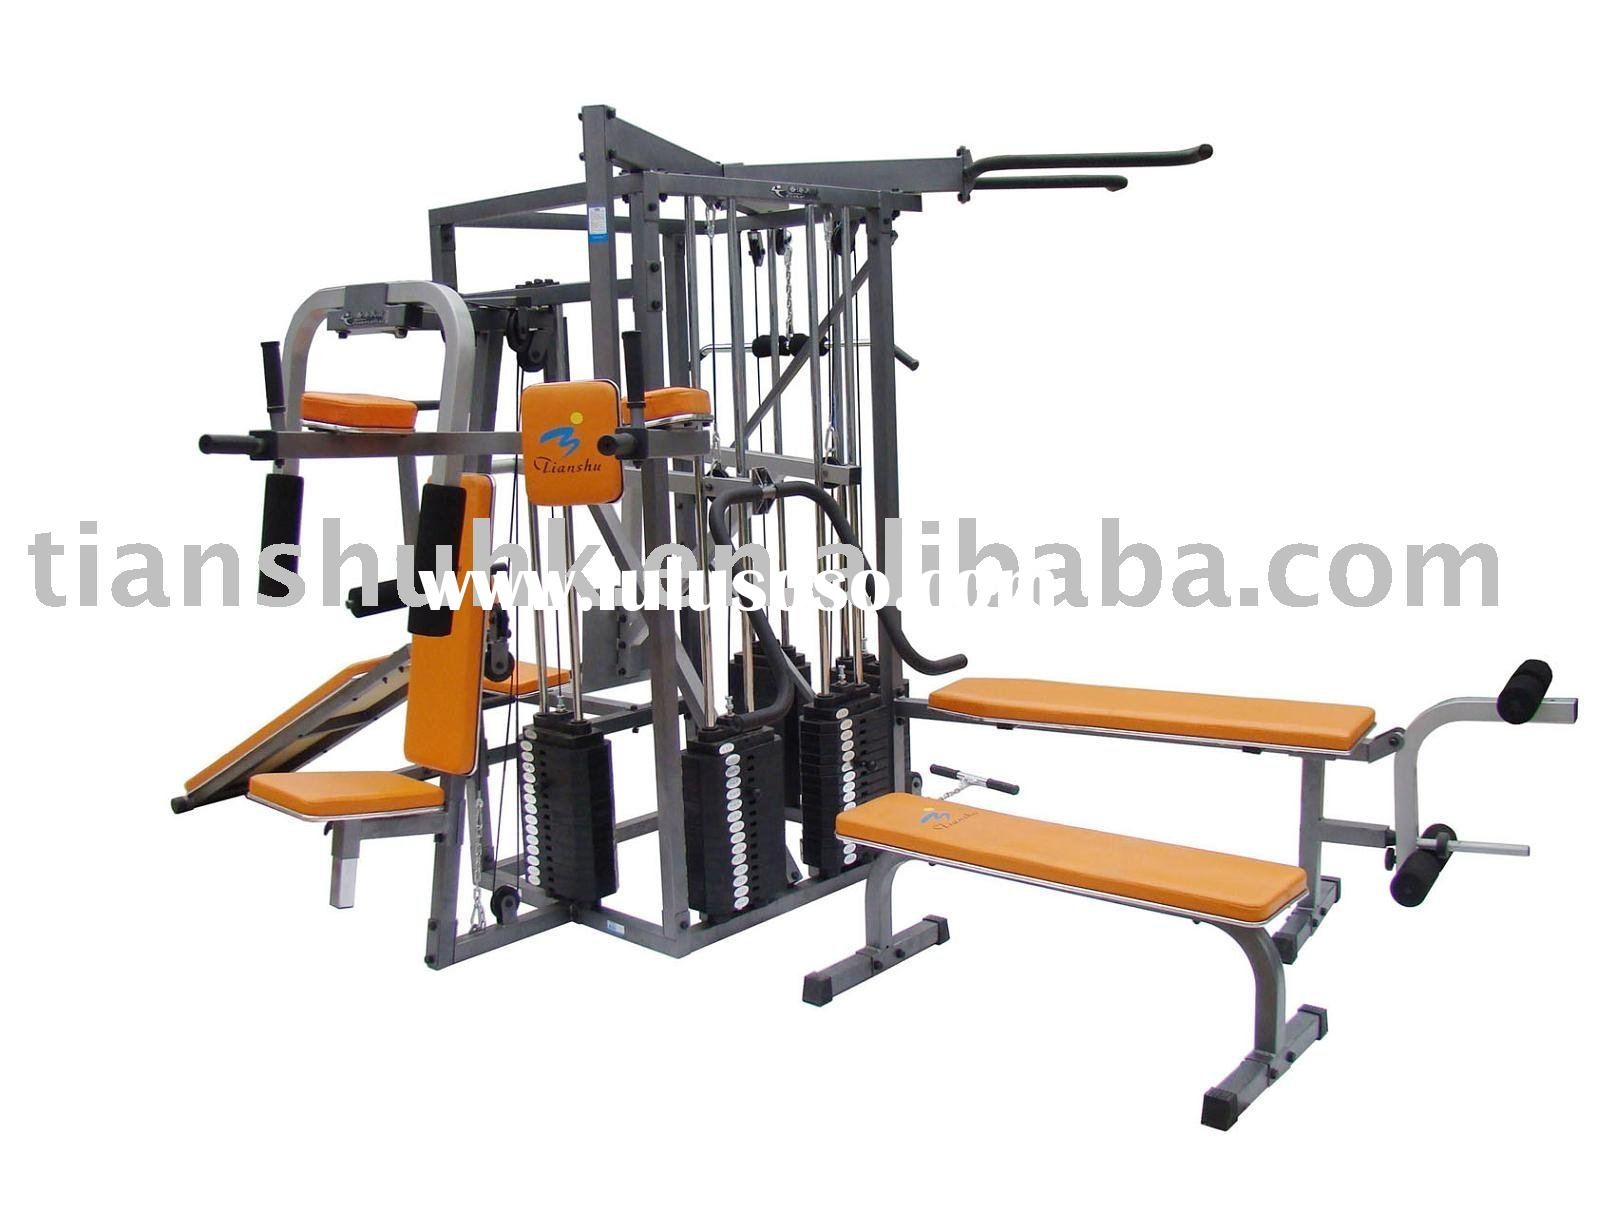 Commercial Bodybuilding Multi Gym Equipment For Sale